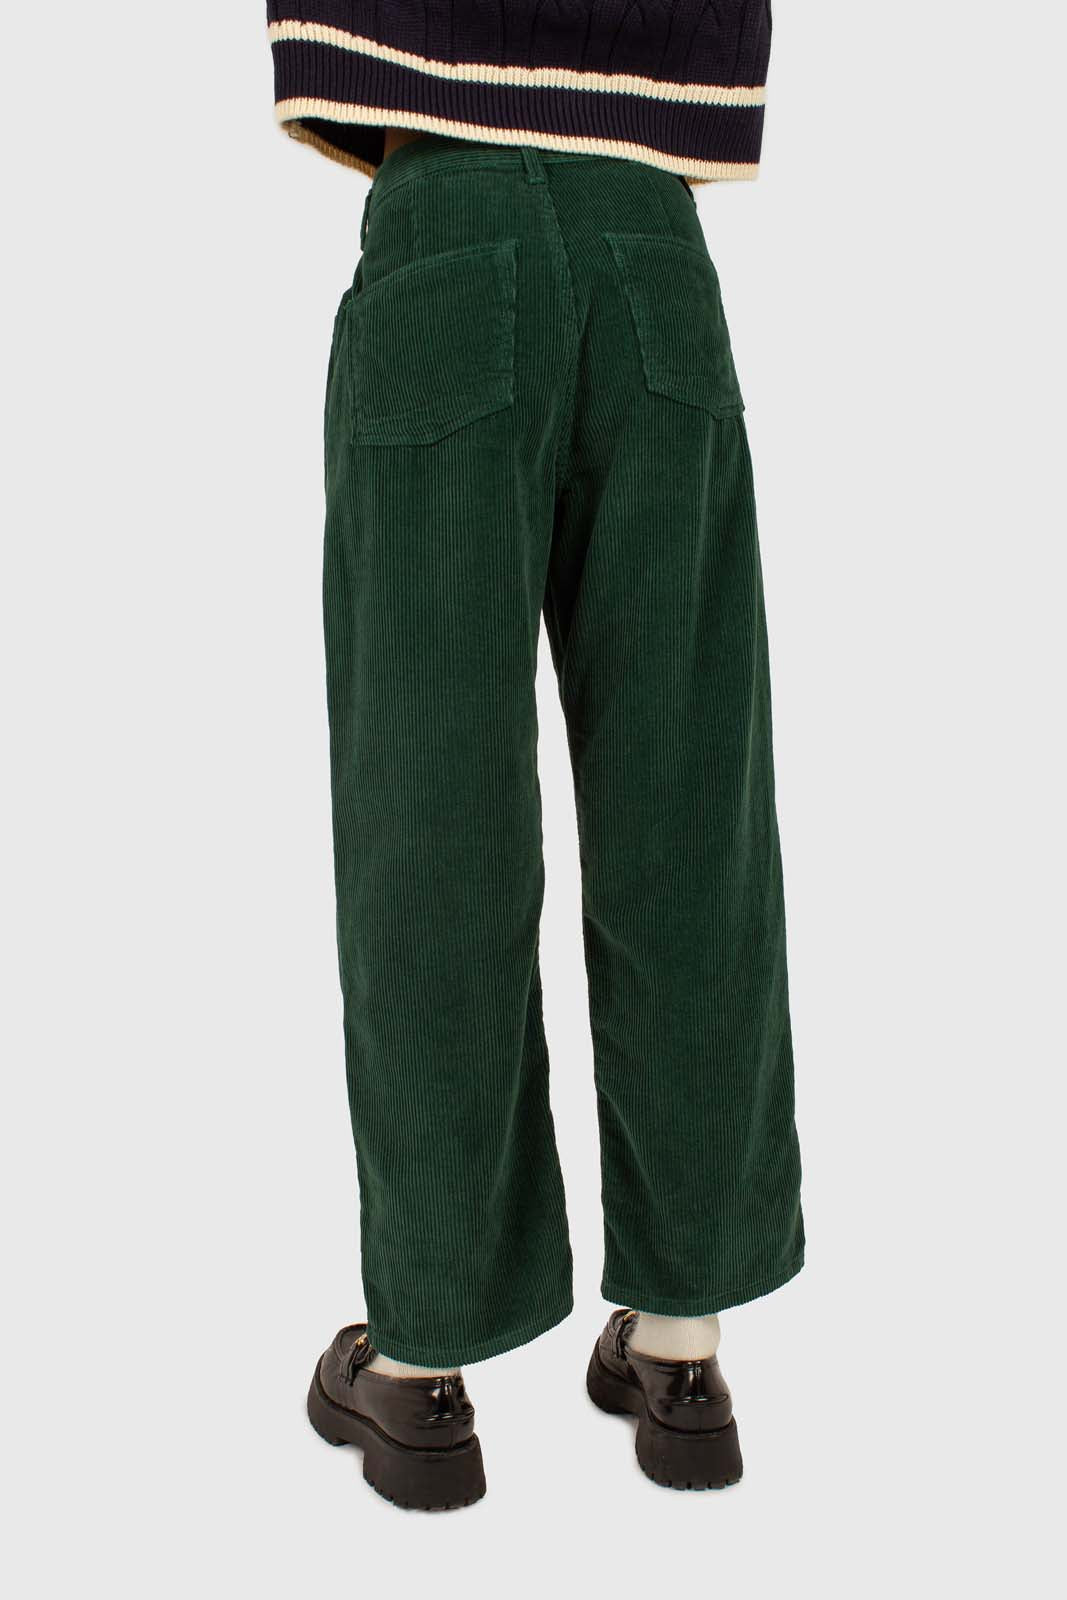 Green corduroy side button loose fit trousers6